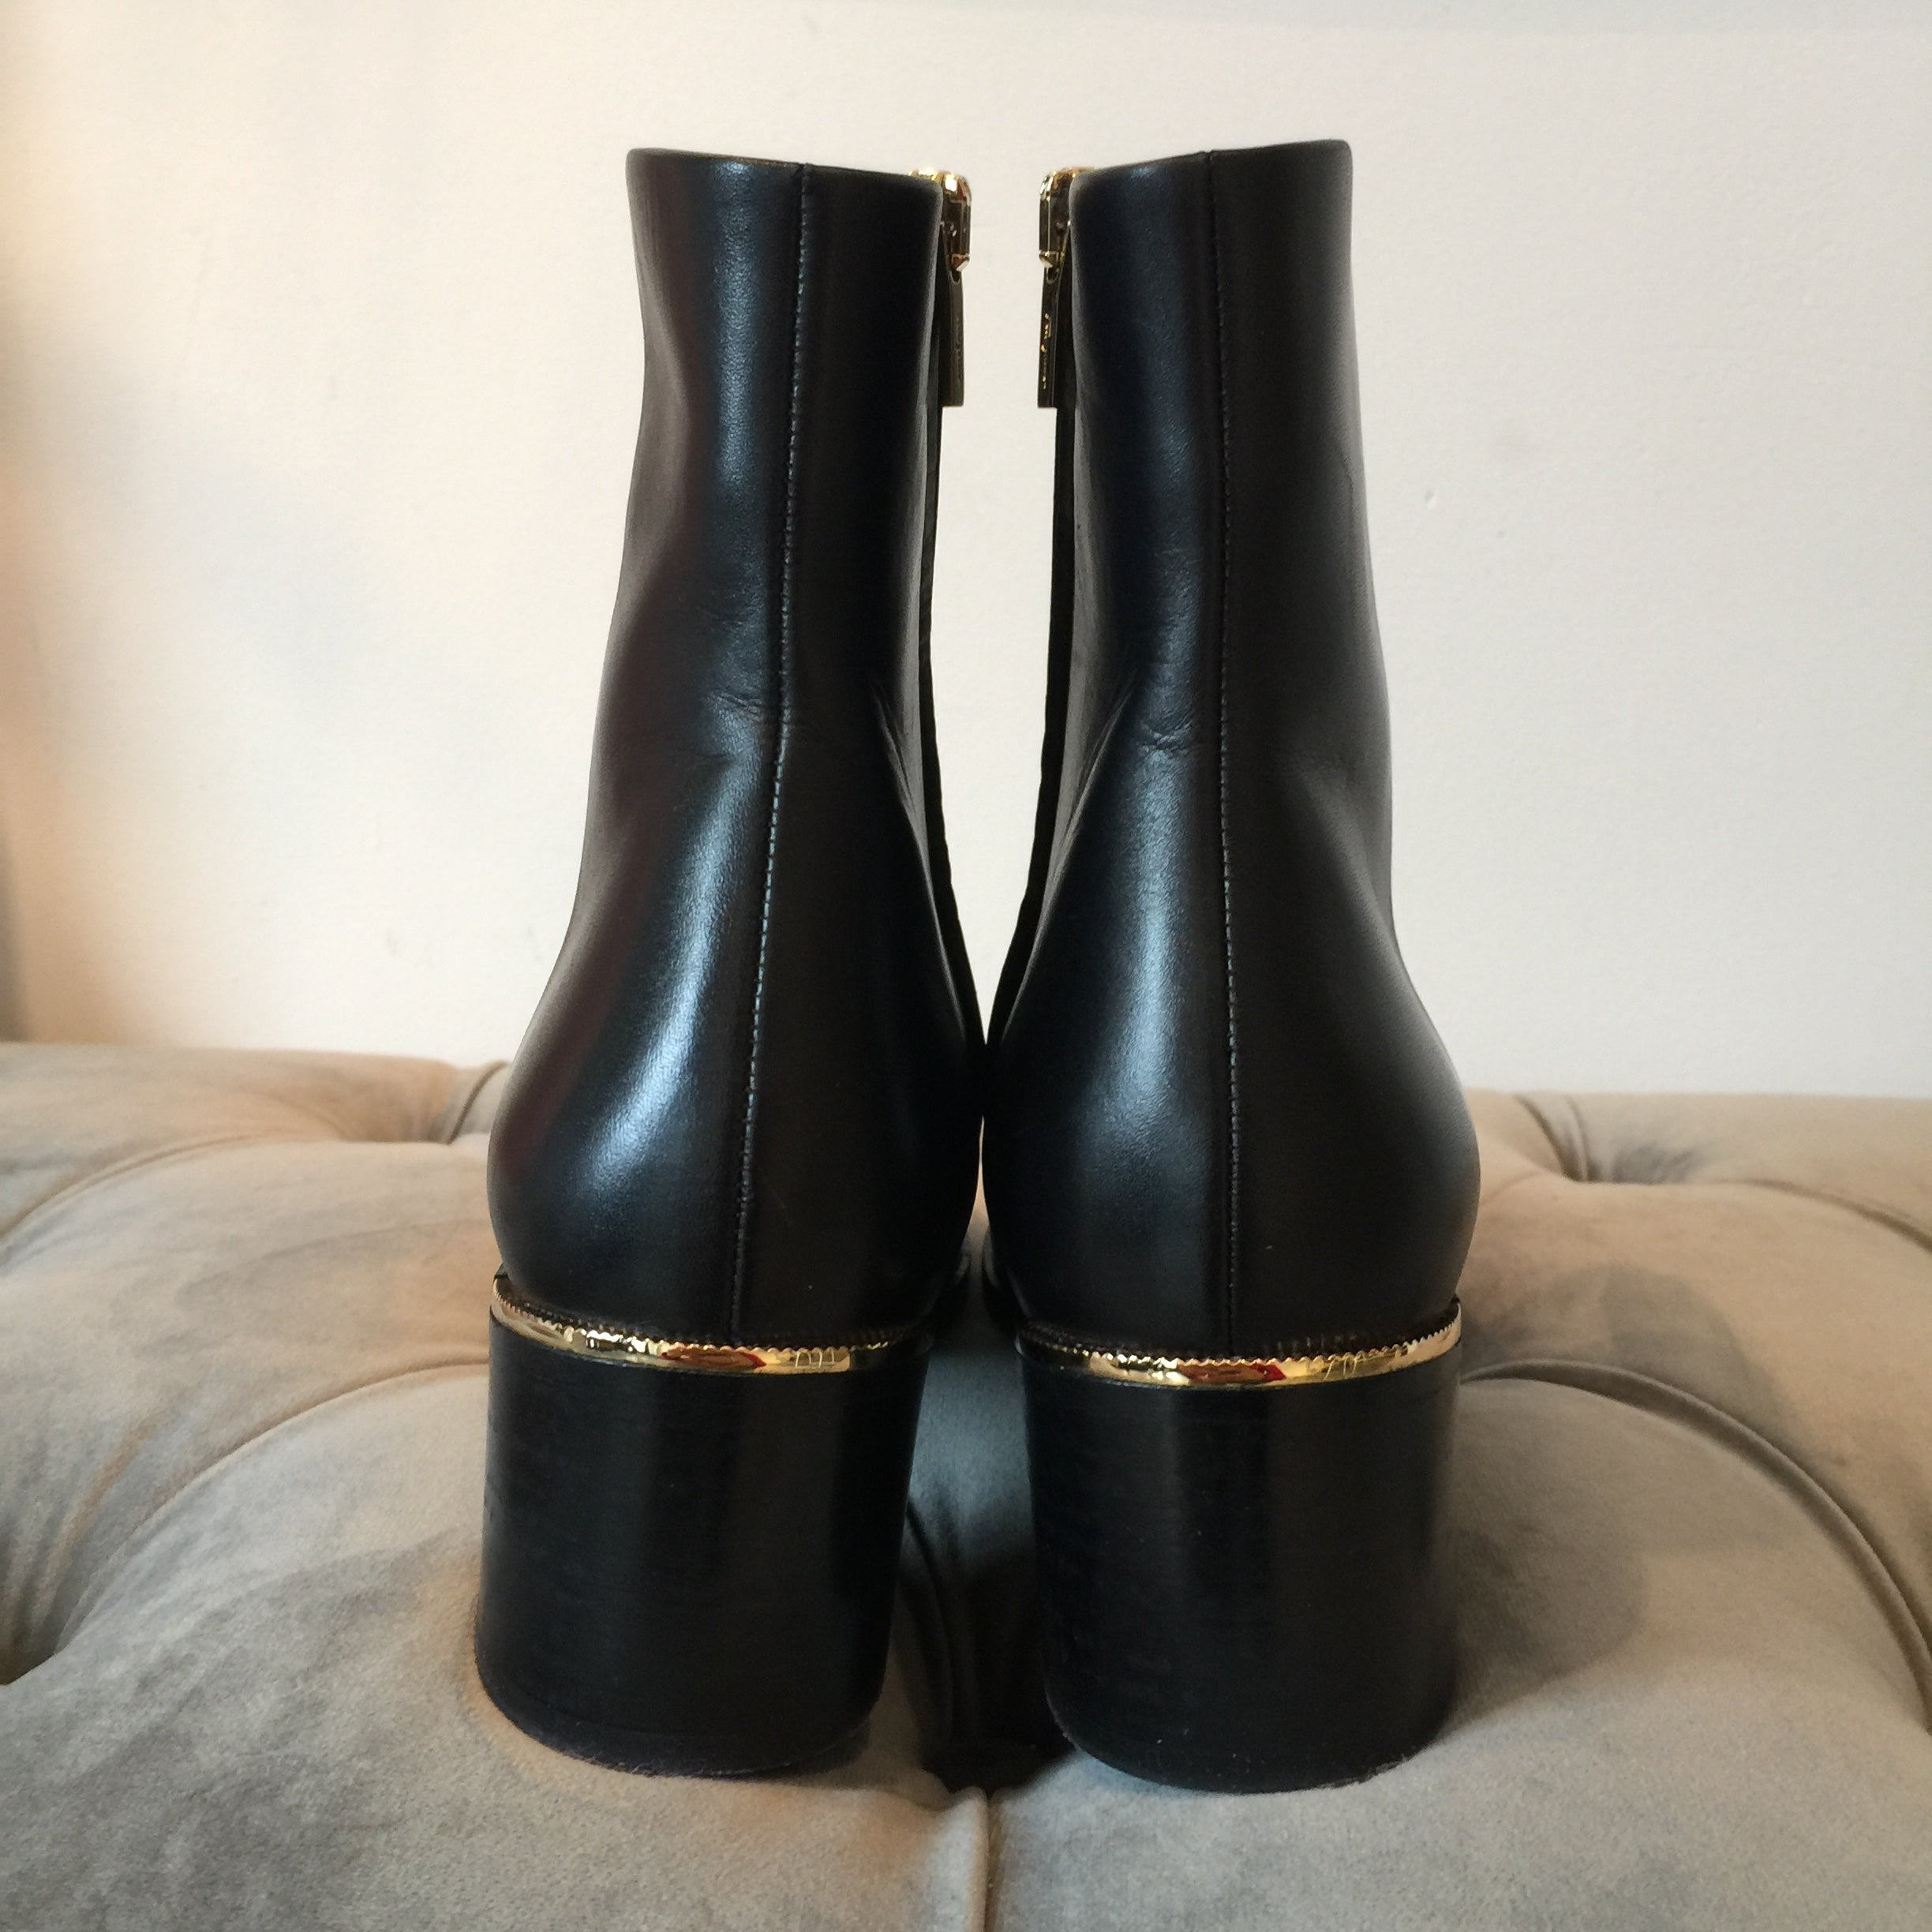 Authentic SALVATORE FERRAGAMO Boots Size 7.5